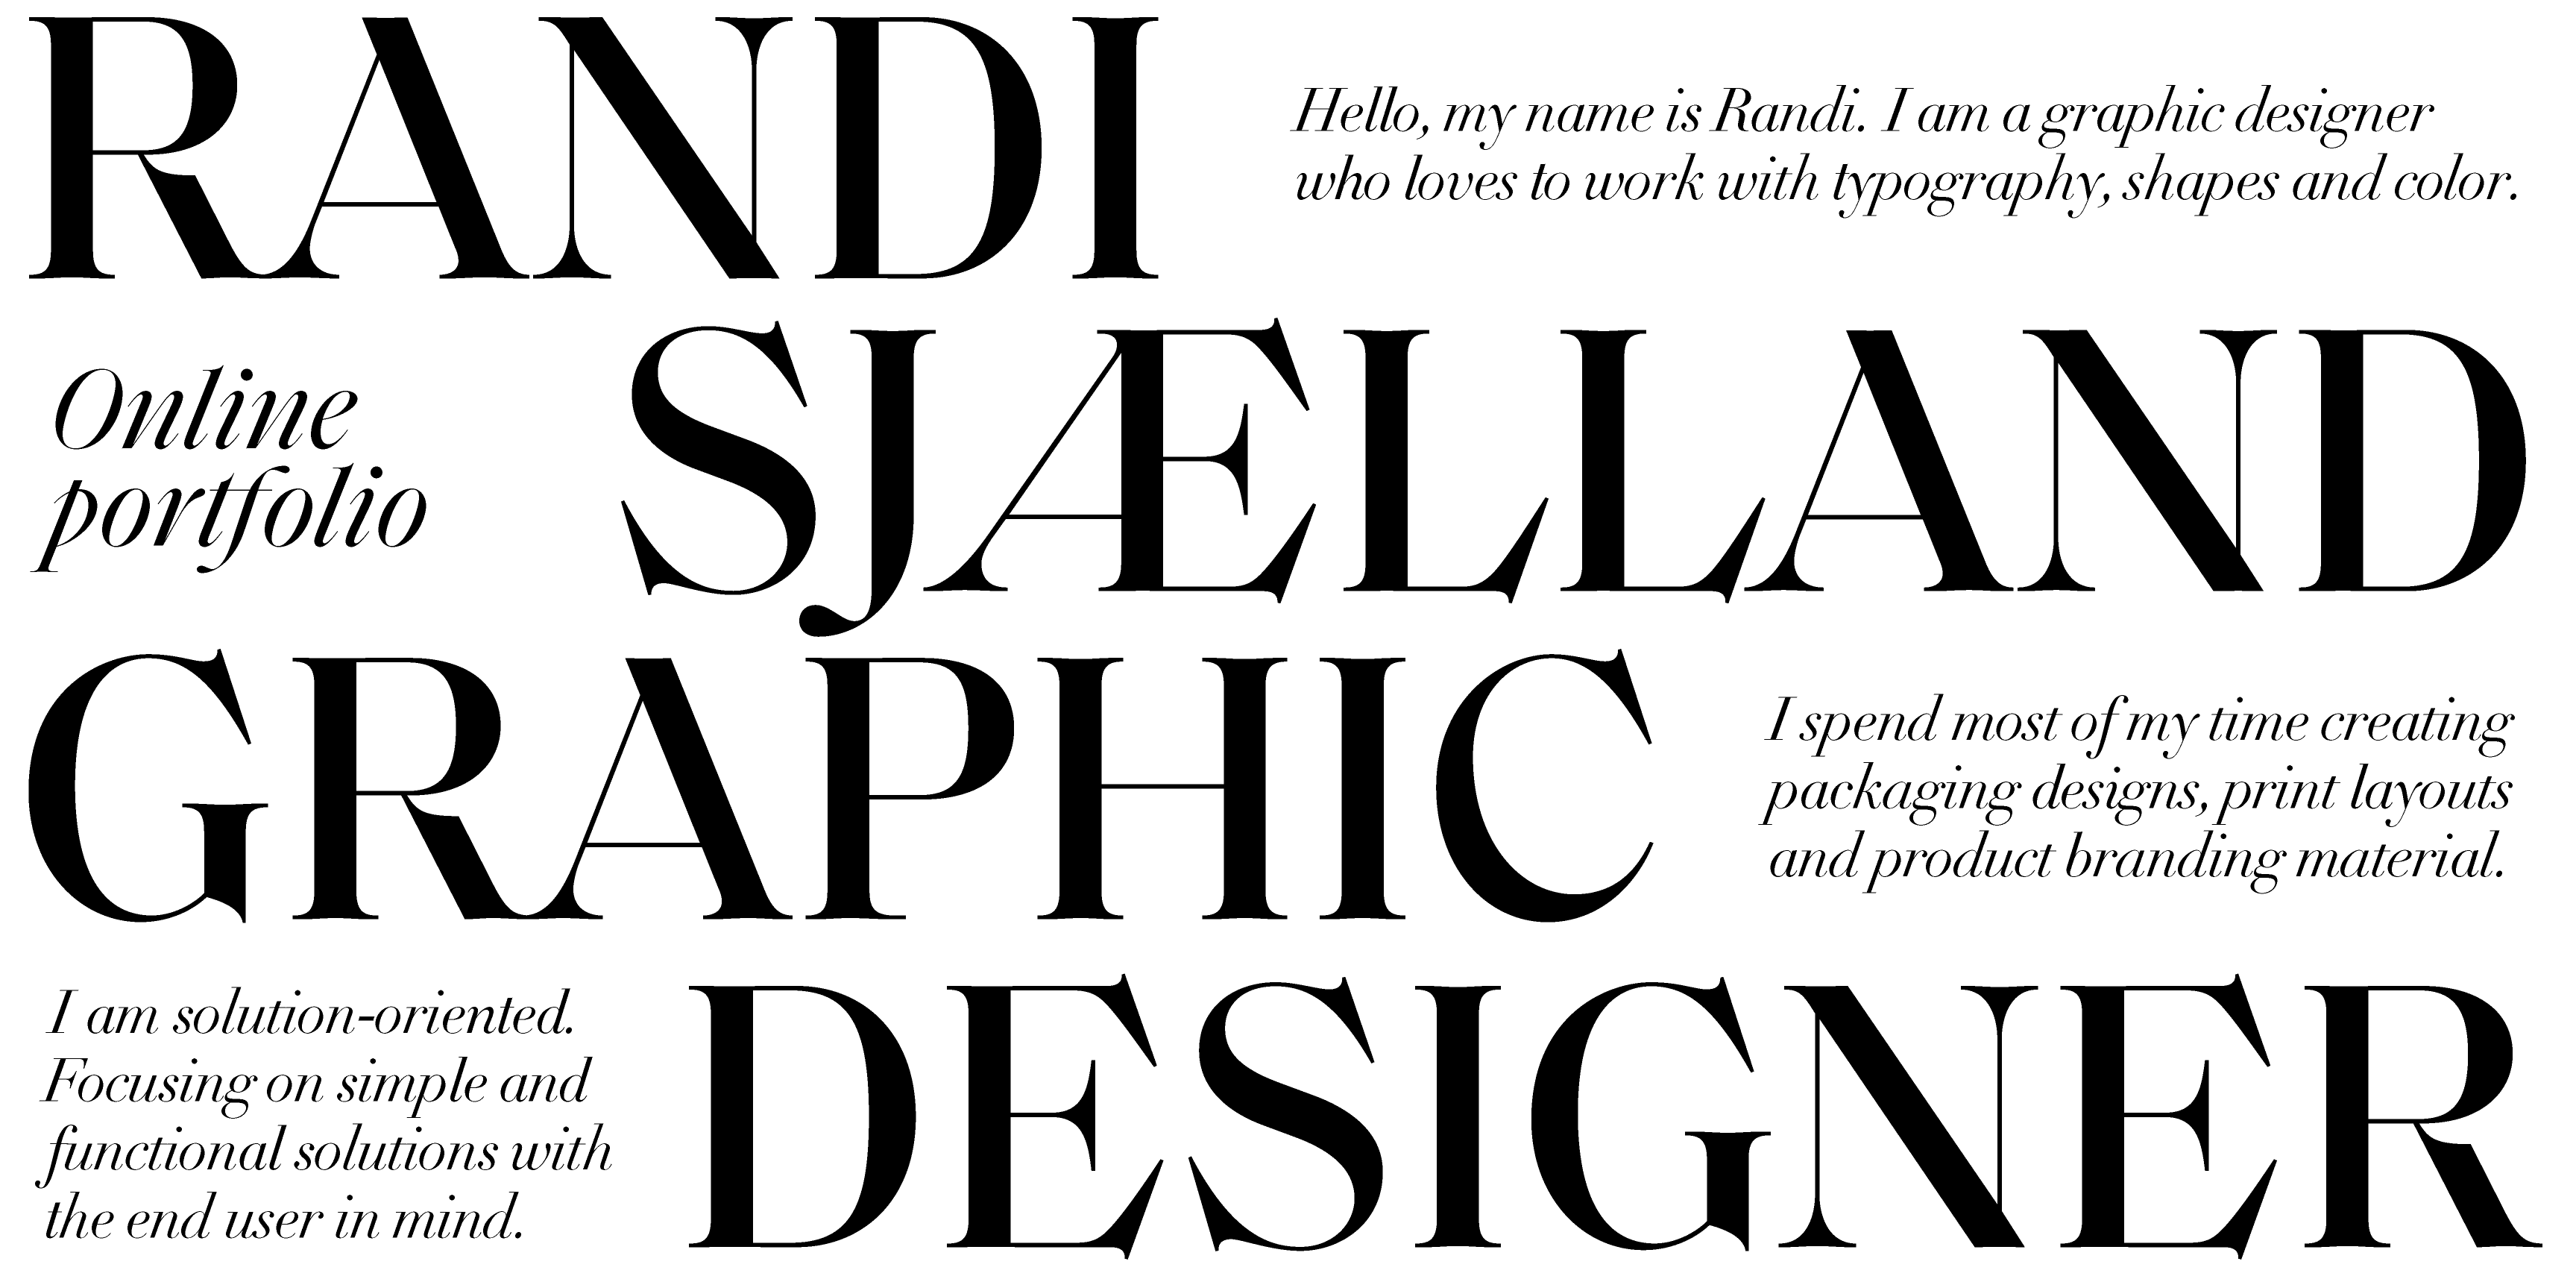 Hello and welcome to my online portfolio. My name isRandi sjælland I'm a graphic designer who loves to work with shapes, Color and typography.  I spend most of my time creating bespoke packaging designs, print layouts and product branding material.  I am a solution-oriented visual problem solver. Focusing on simple and functional solutions with the end consumer in mind.